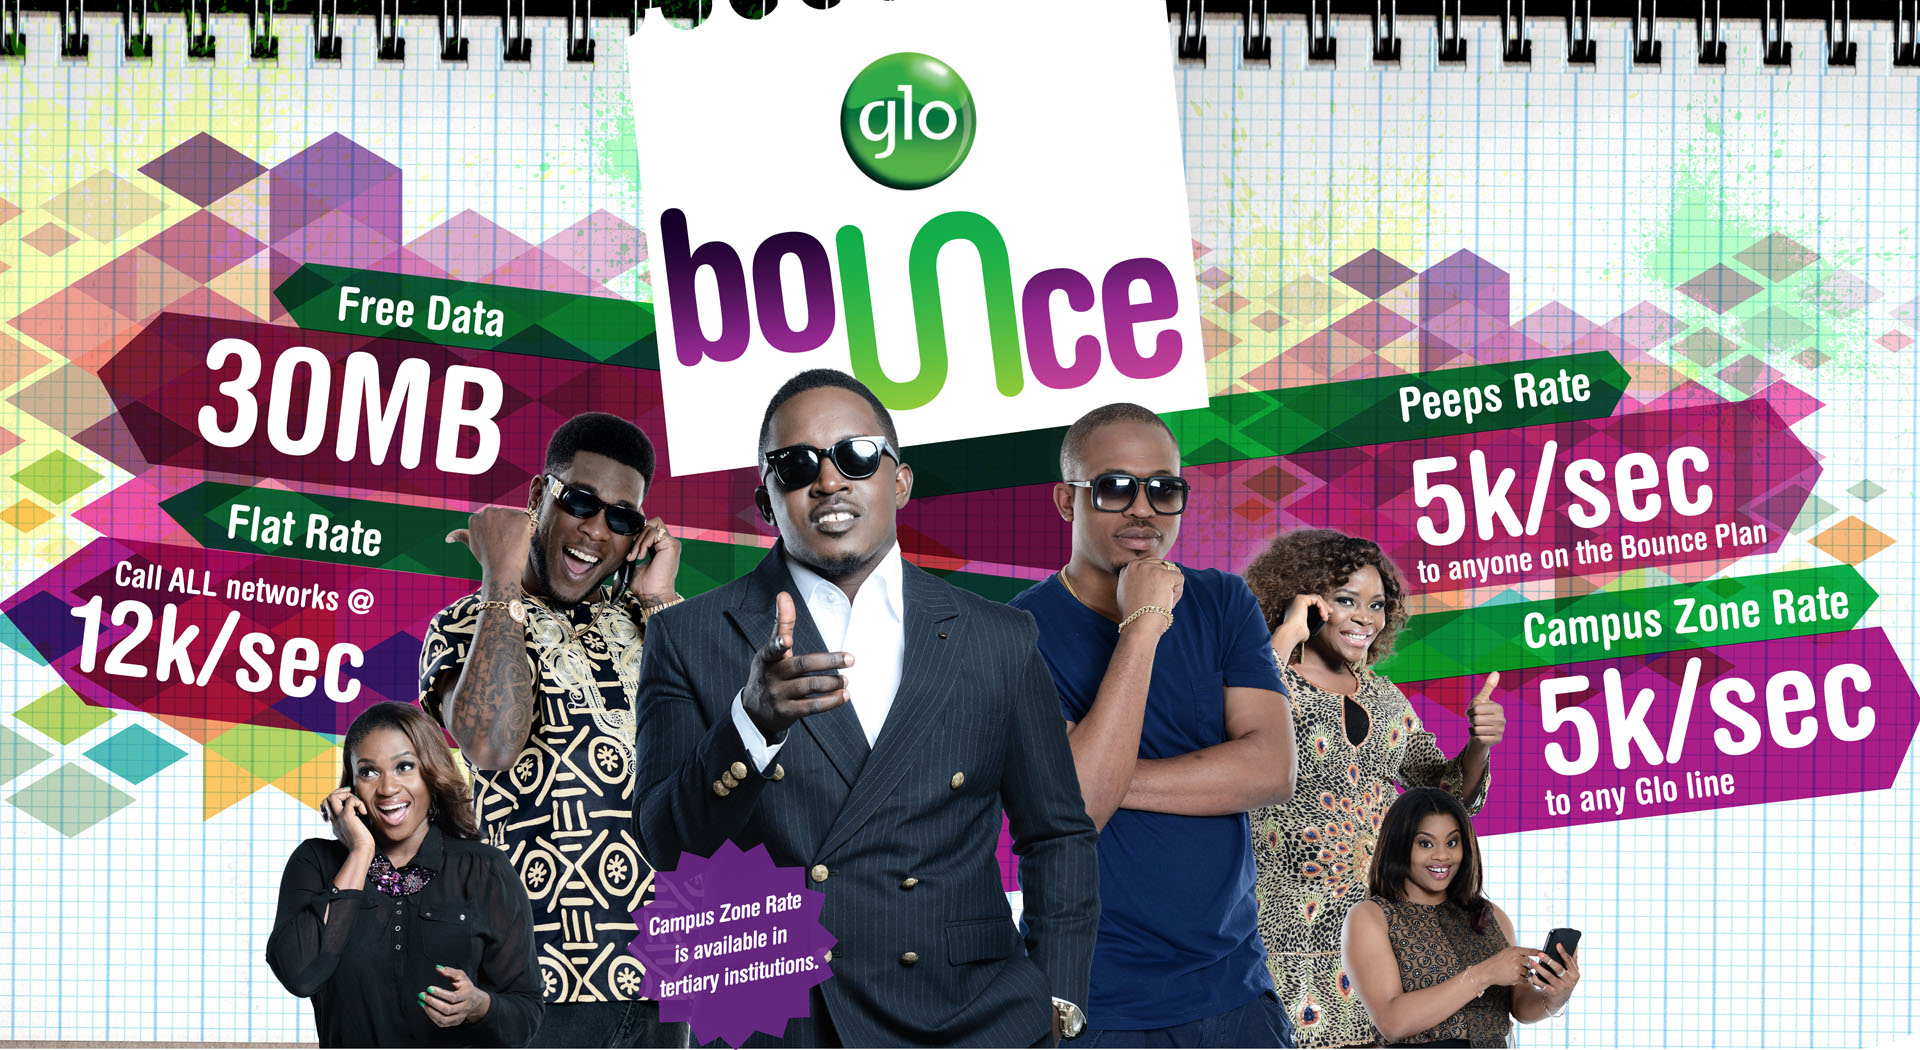 newBOUNCE11  Glo Bounce Tariff: Call For 12k/sec To All Networks and Get 30MB